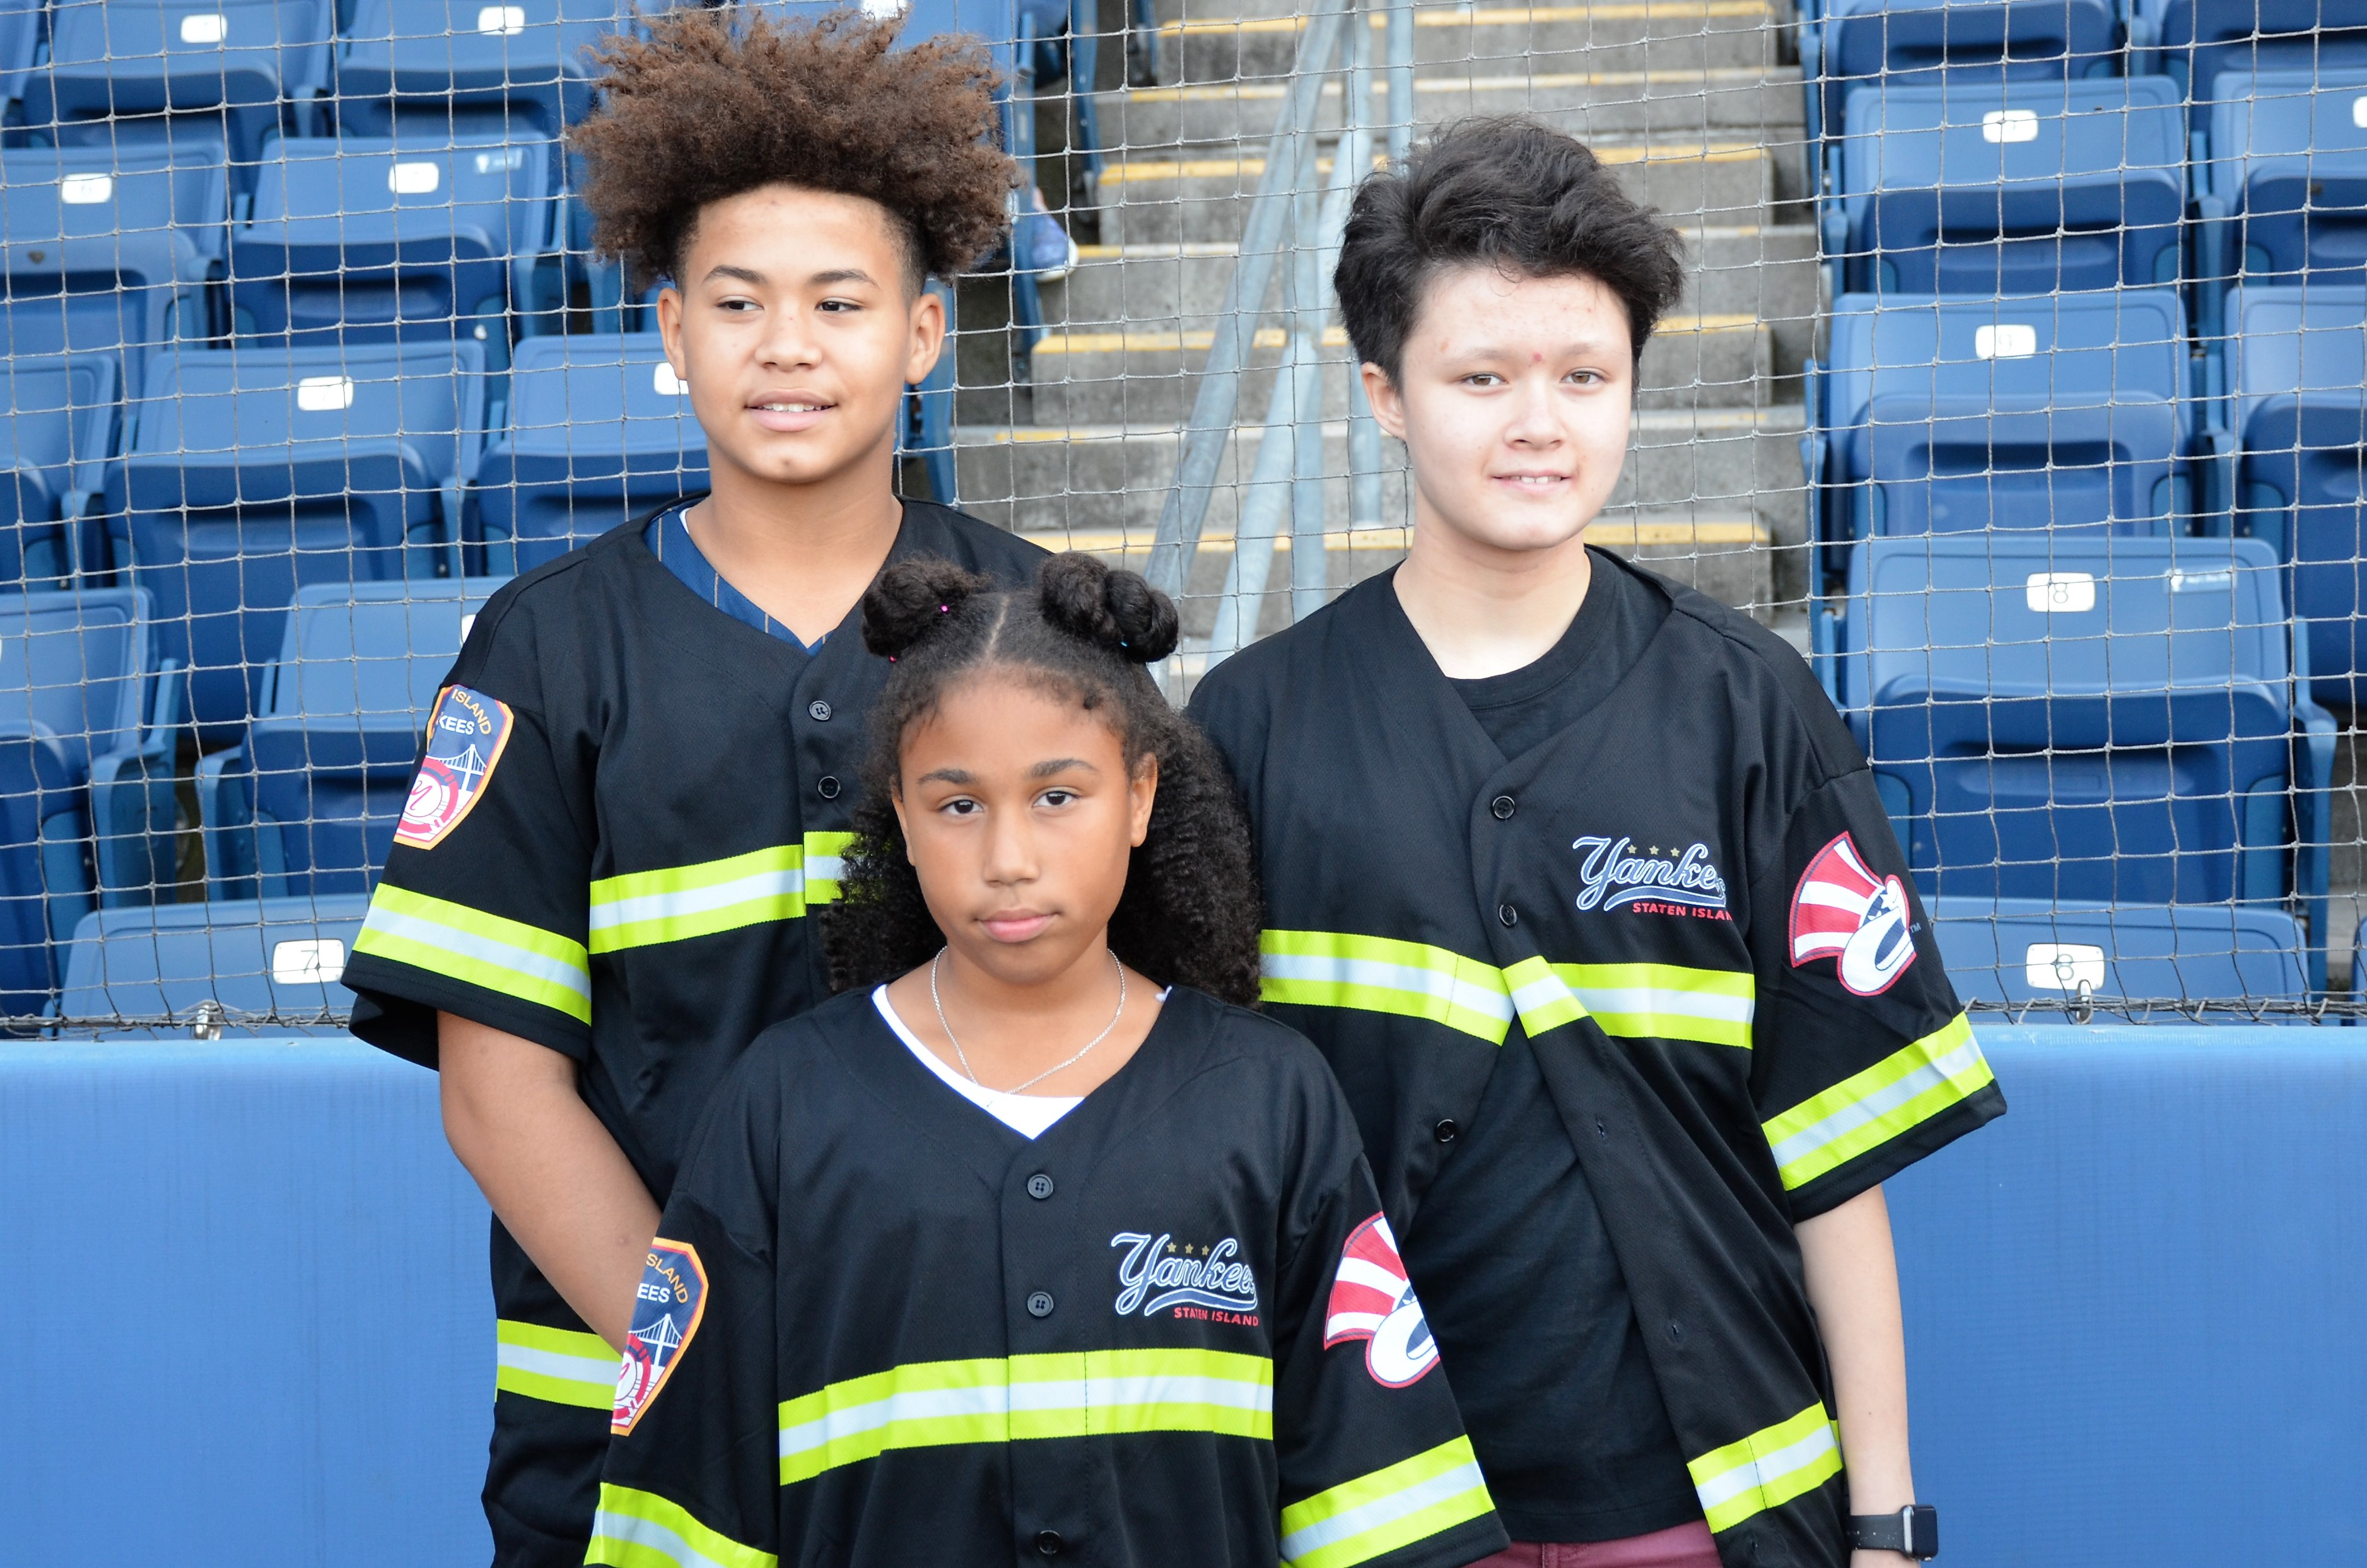 Staten Island Yankees/Con Edison Kids are celebrated for their accomplishments during a ceremony at the Richmond County Bank Ballpark